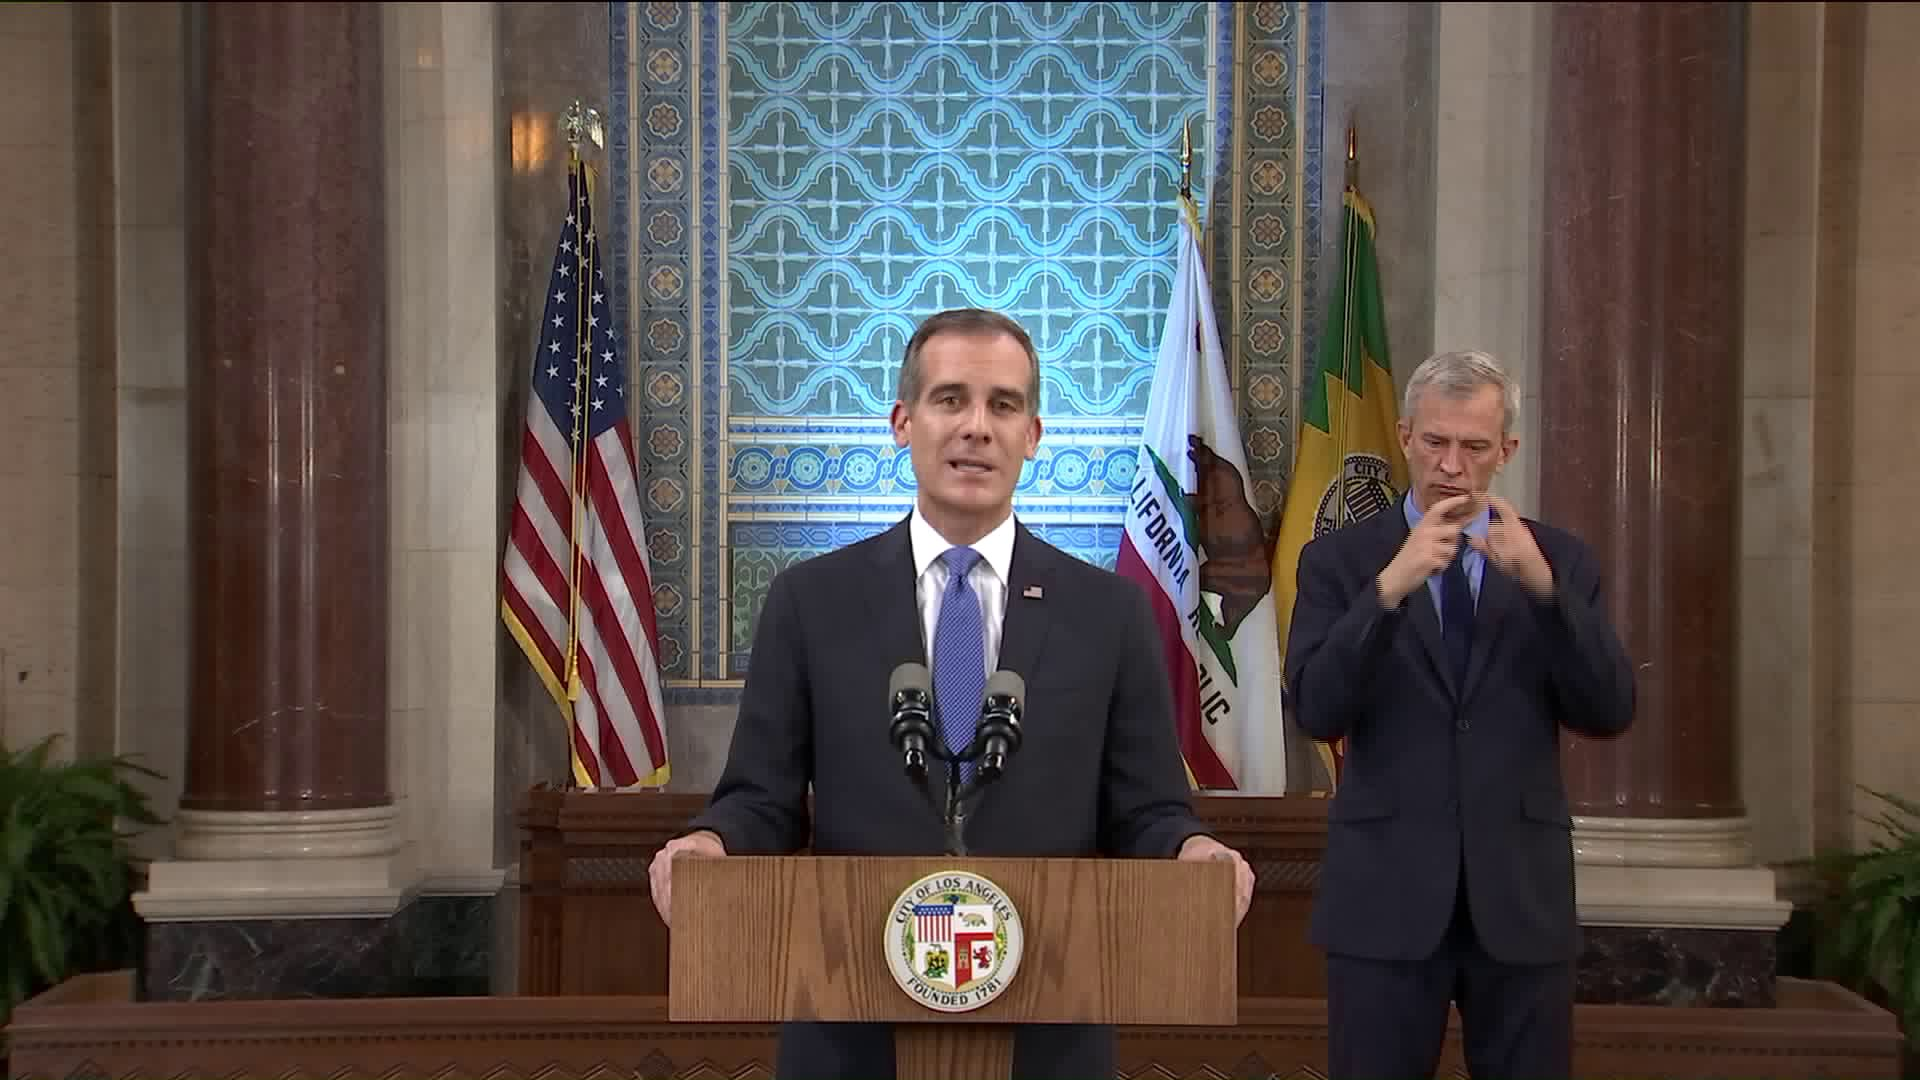 Los Angeles Mayor Eric Garcetti delivers the State of the City address on April 19, 2020. (KTLA)